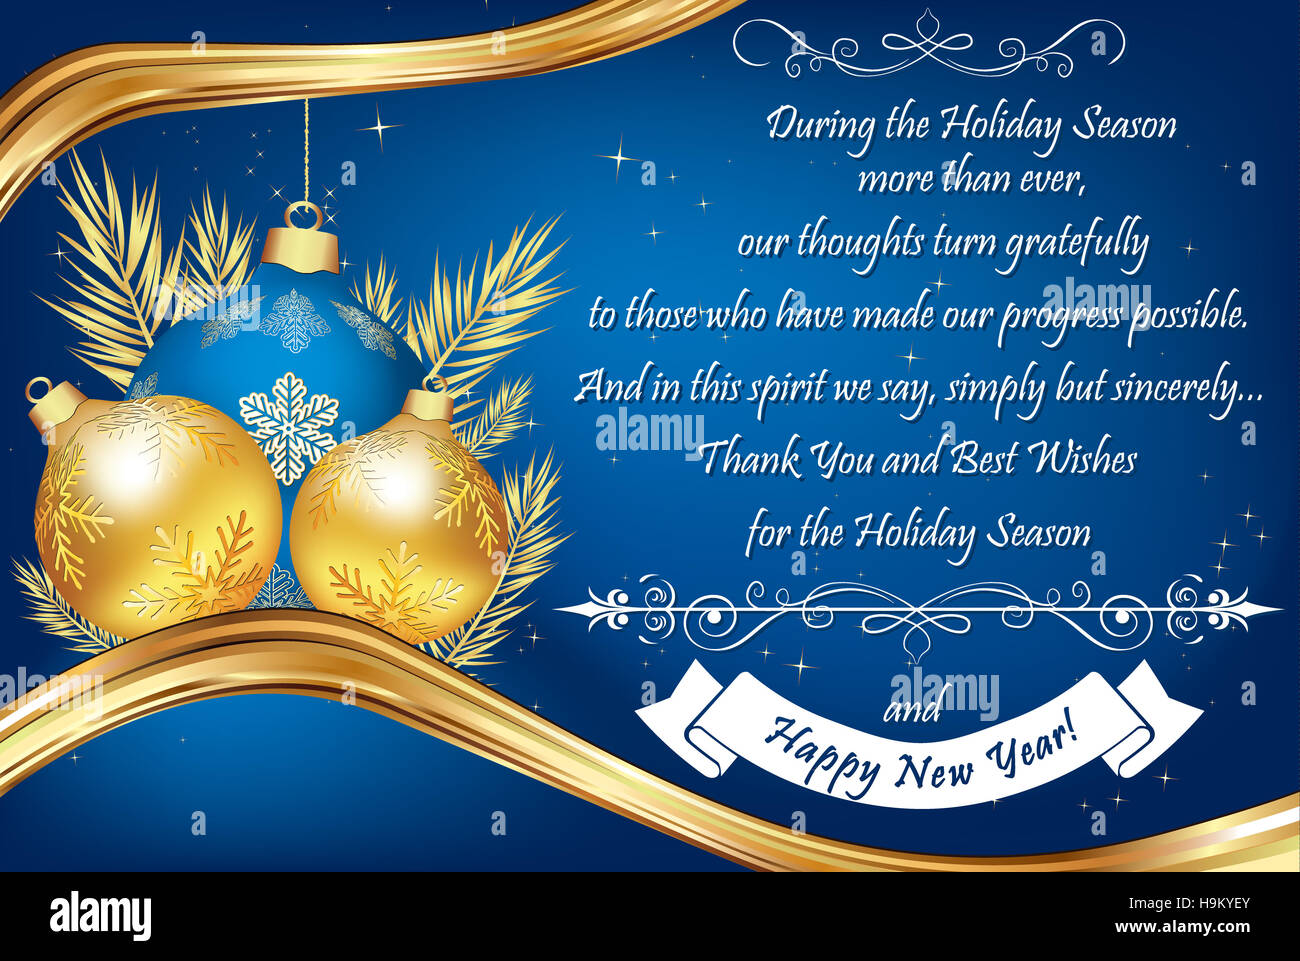 Thank You blue business greeting card for the End of the Year Stock ...